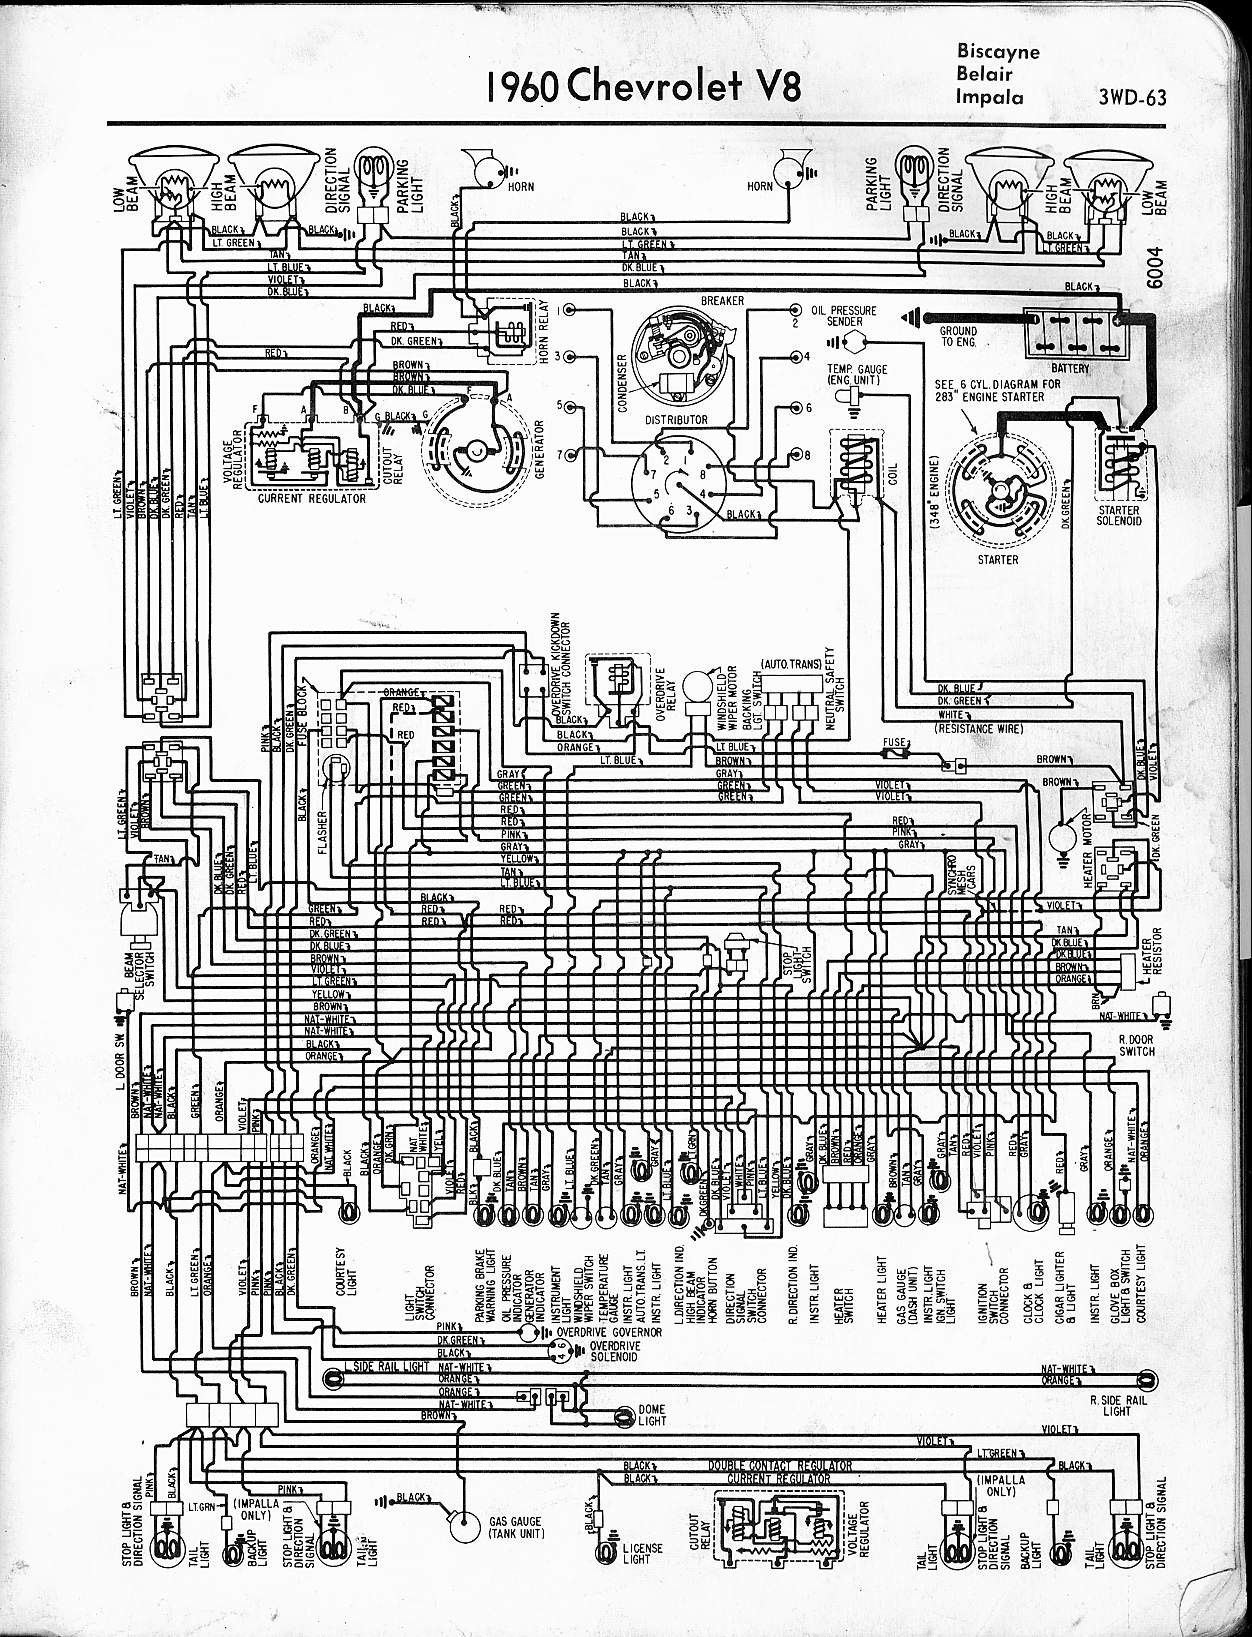 2005 Chevy Impala Engine Diagram Chevrolet Sedan 1964 Wiring Harness 57 65 Diagrams Of